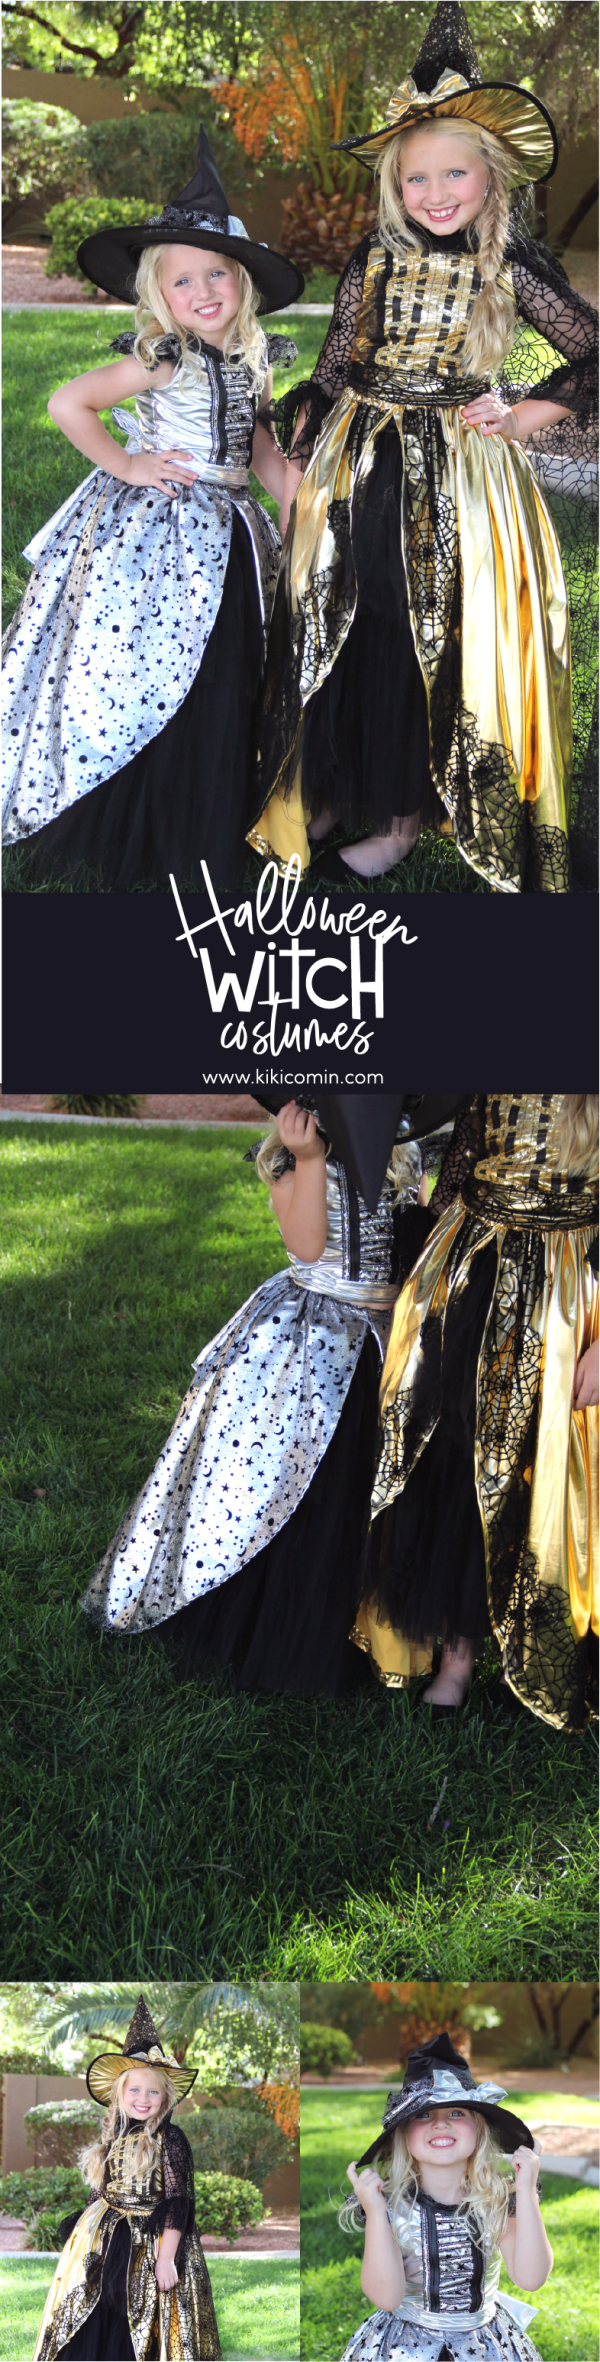 Halloween Witch Costumes at kiki and company. Cutest costumes!